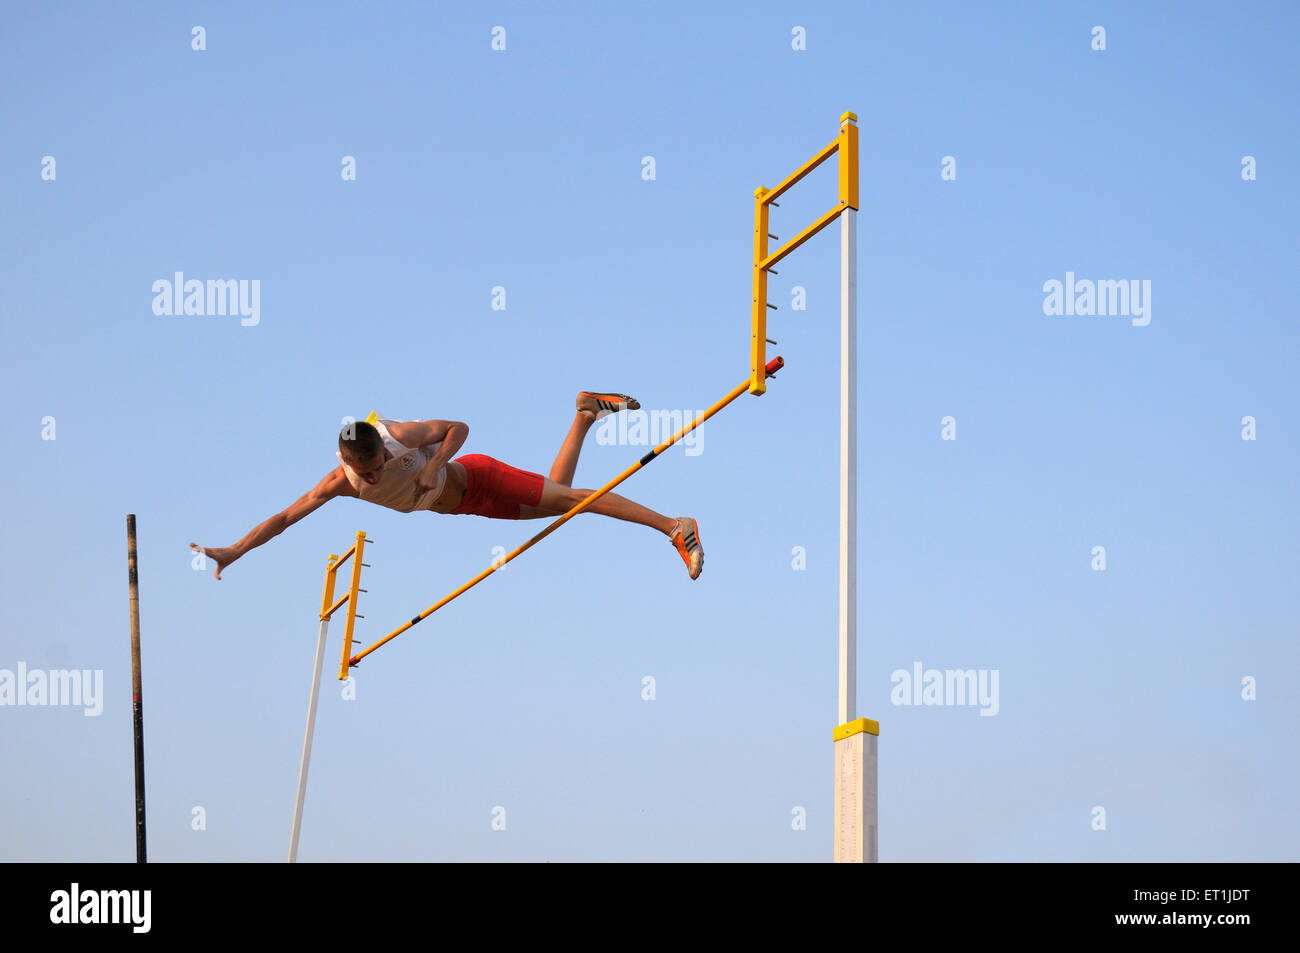 Andrew sutcliffe attempting pole vault jump ; Pune ; Maharashtra ; India 15 October 2008 NOMR - Stock Image